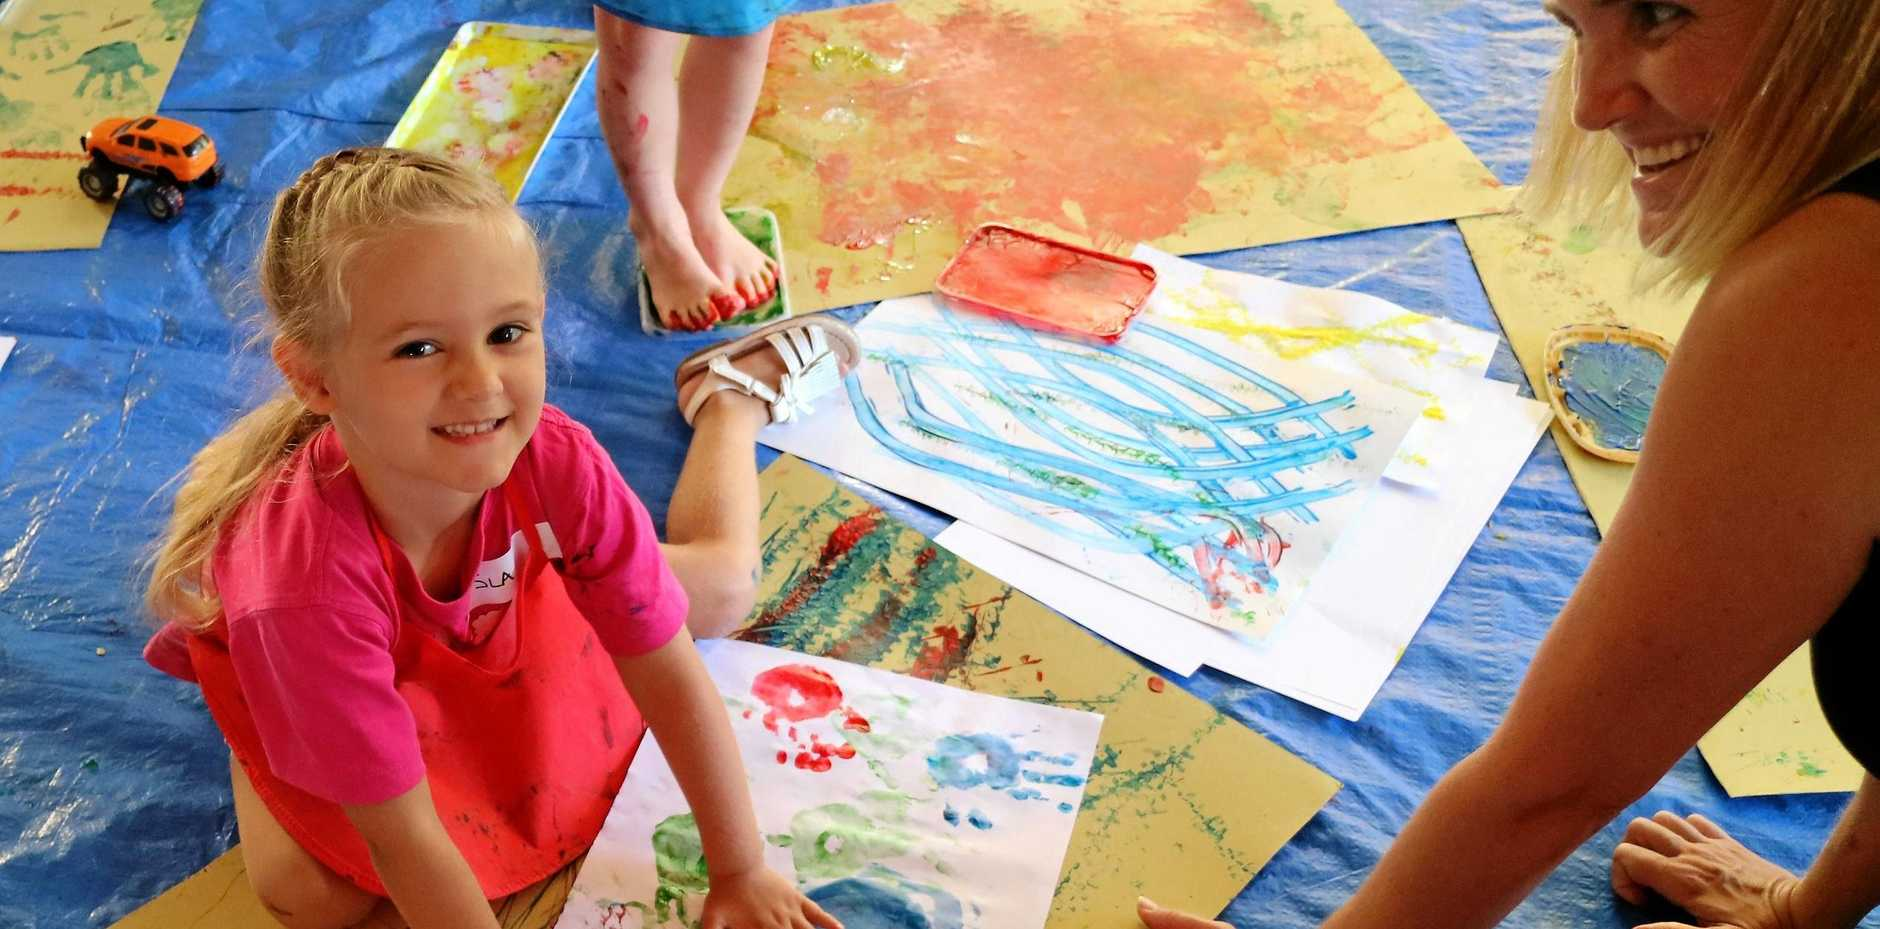 GET CREATIVE: Isla Ahern with Mother Rebecca Ahern had a great time hand painting during the recent Art Play session.